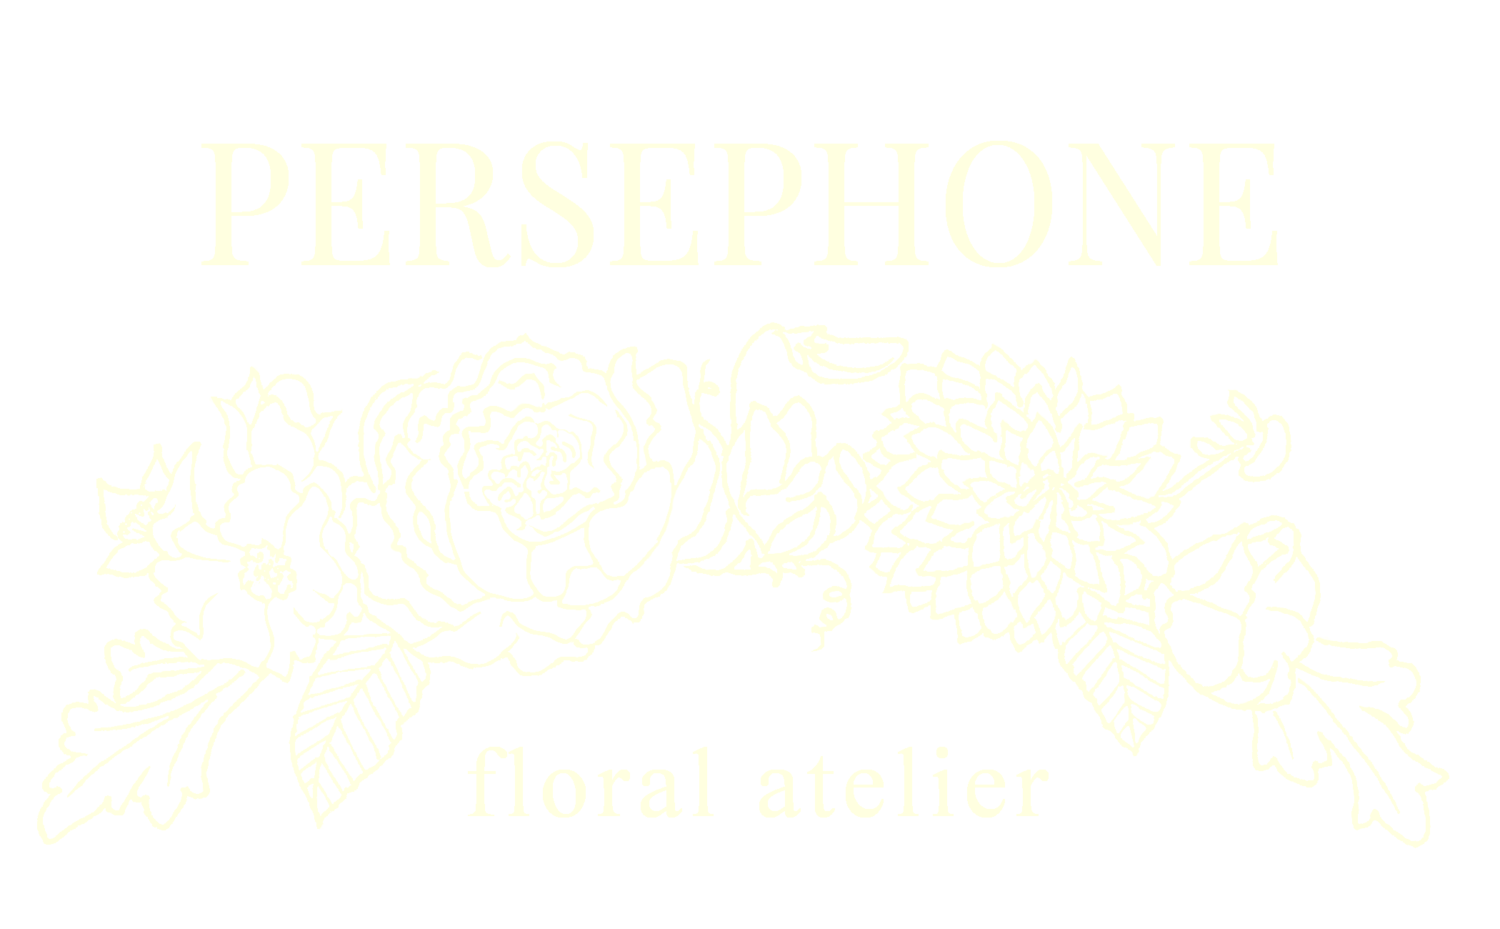 Persephone Floral Atelier